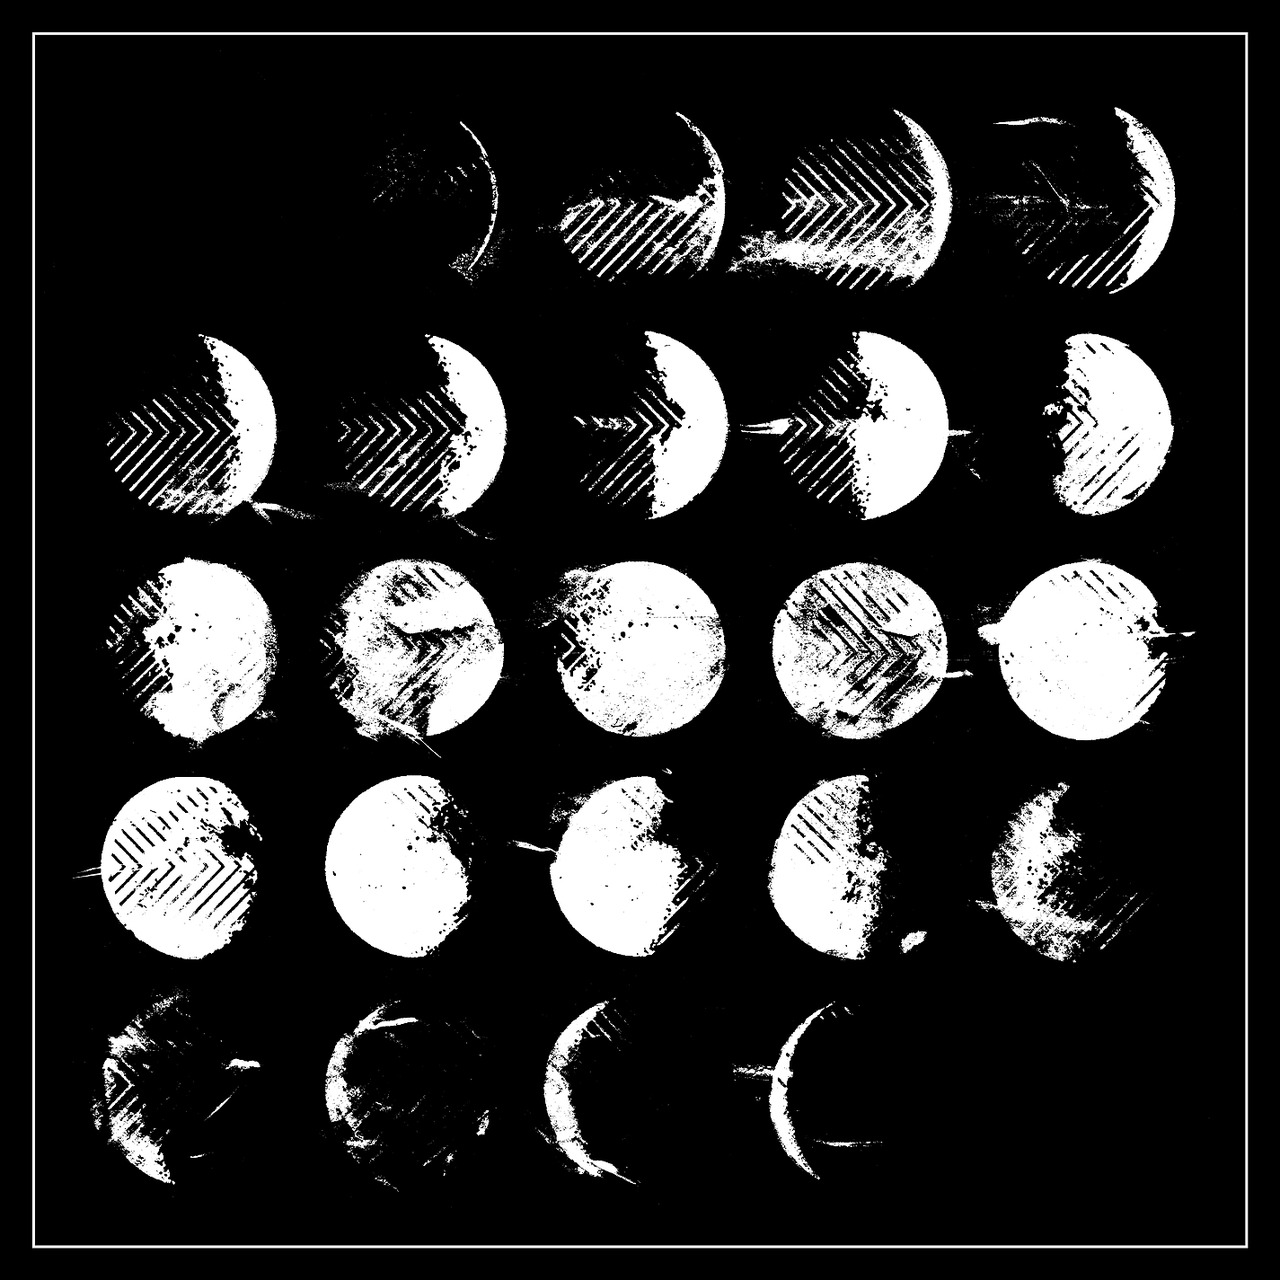 Chronique dominicale et musicale : Converge - All We Love We Leave Behind